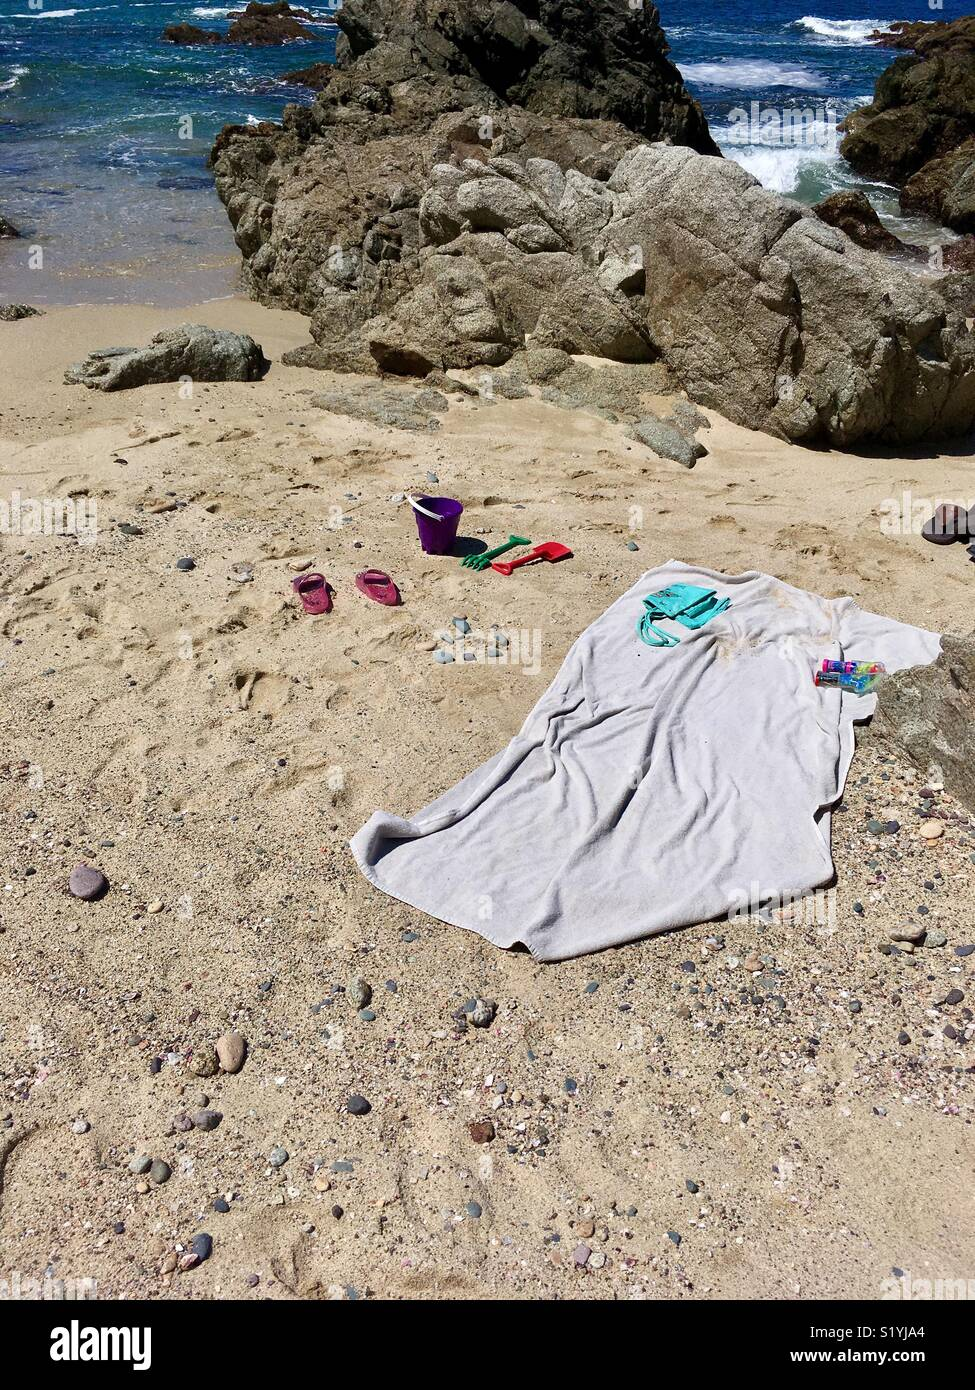 A day at the beach, near waters edge a still life with towel and beach shoes and toys - Stock Image